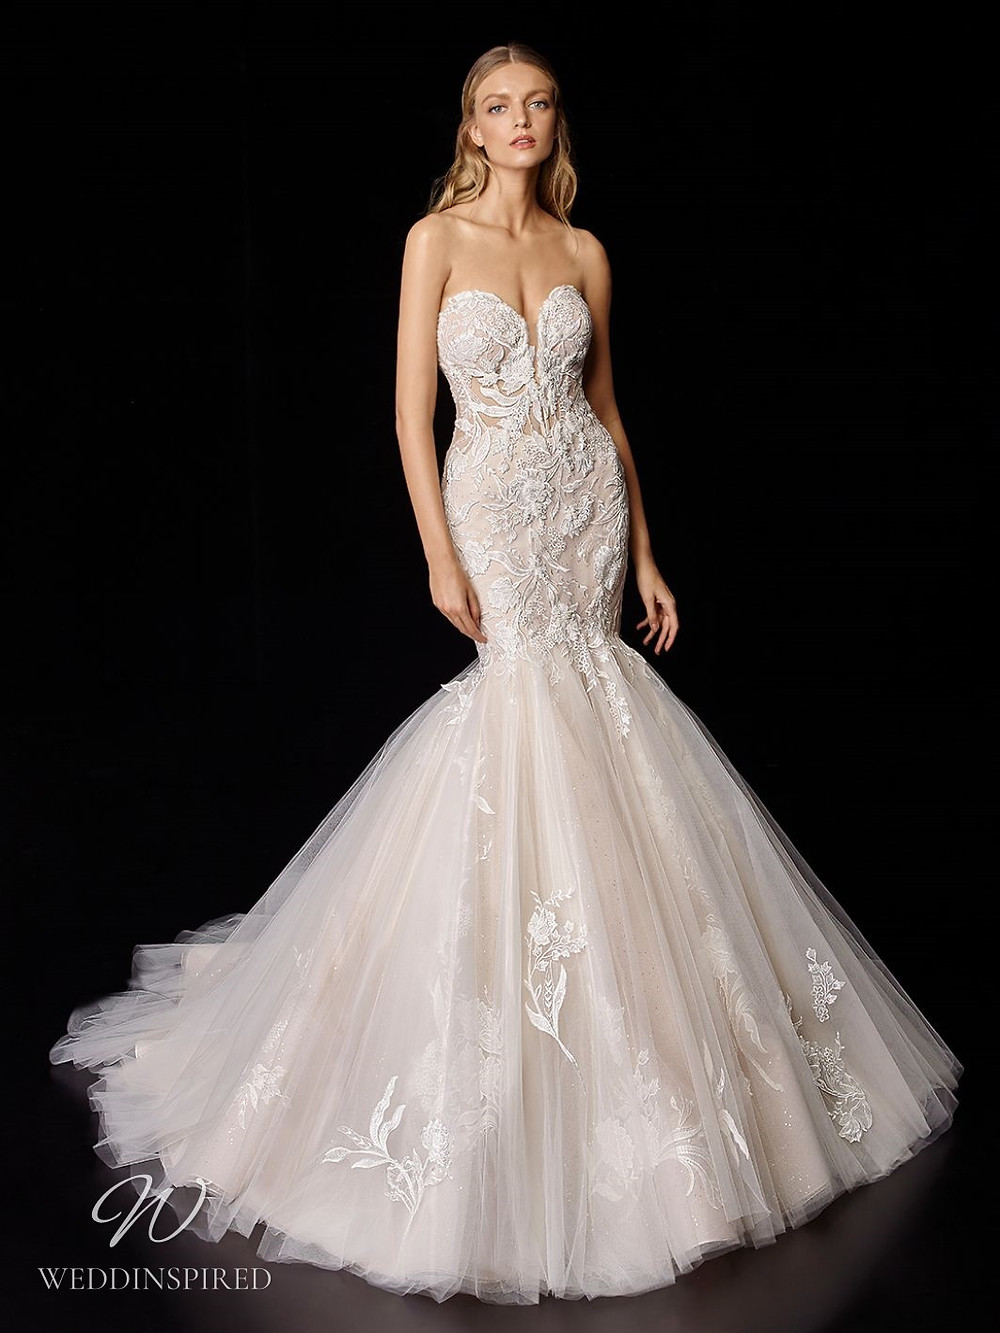 An Enzoani blush strapless lace and tulle mermaid wedding dress with a sweetheart neckline